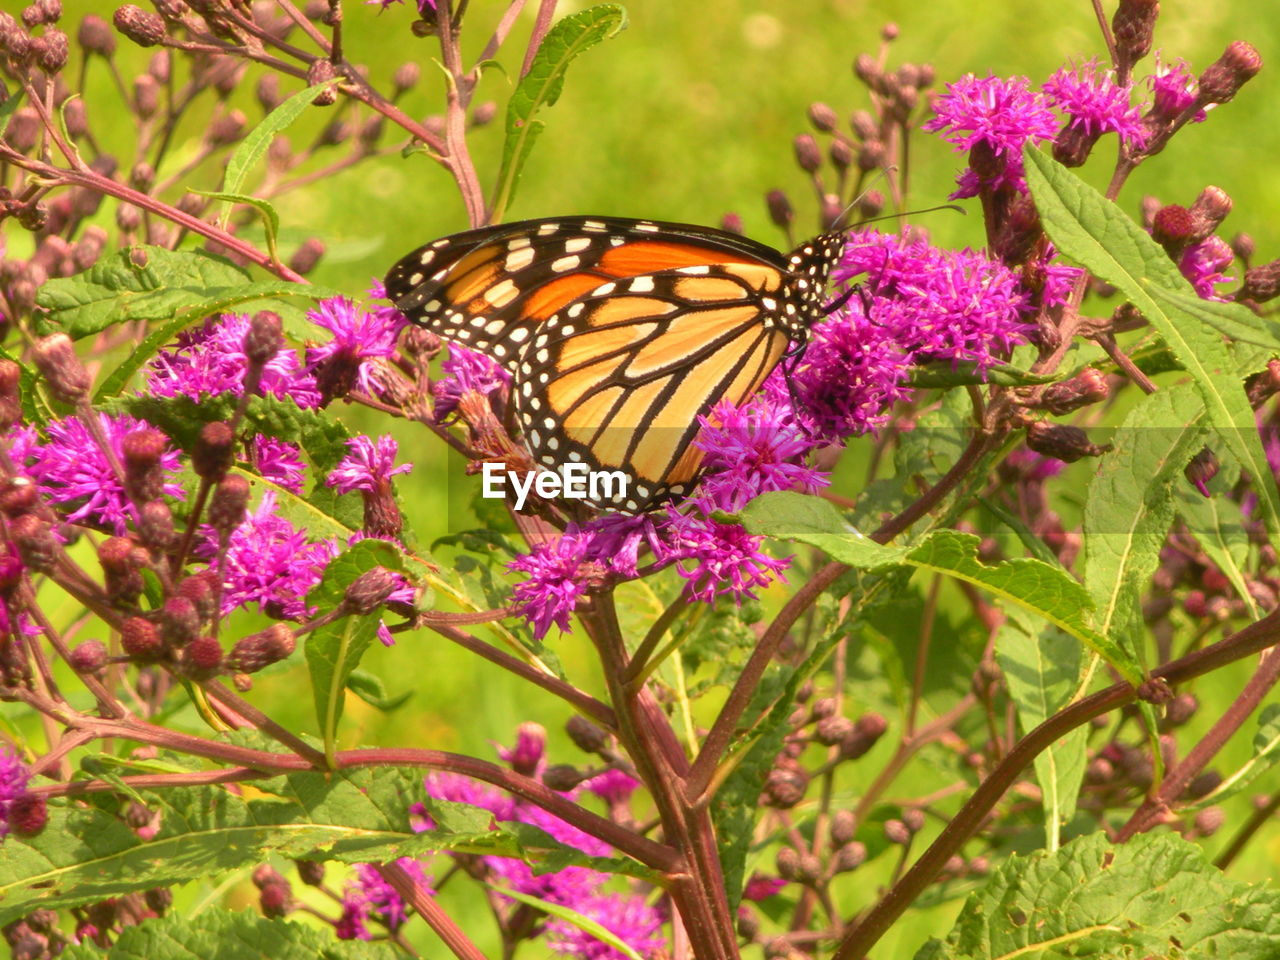 flower, plant, beauty in nature, flowering plant, animal wing, animal themes, butterfly - insect, animal wildlife, insect, animal, invertebrate, one animal, fragility, vulnerability, freshness, animals in the wild, growth, petal, pink color, nature, purple, flower head, no people, pollination, outdoors, springtime, butterfly